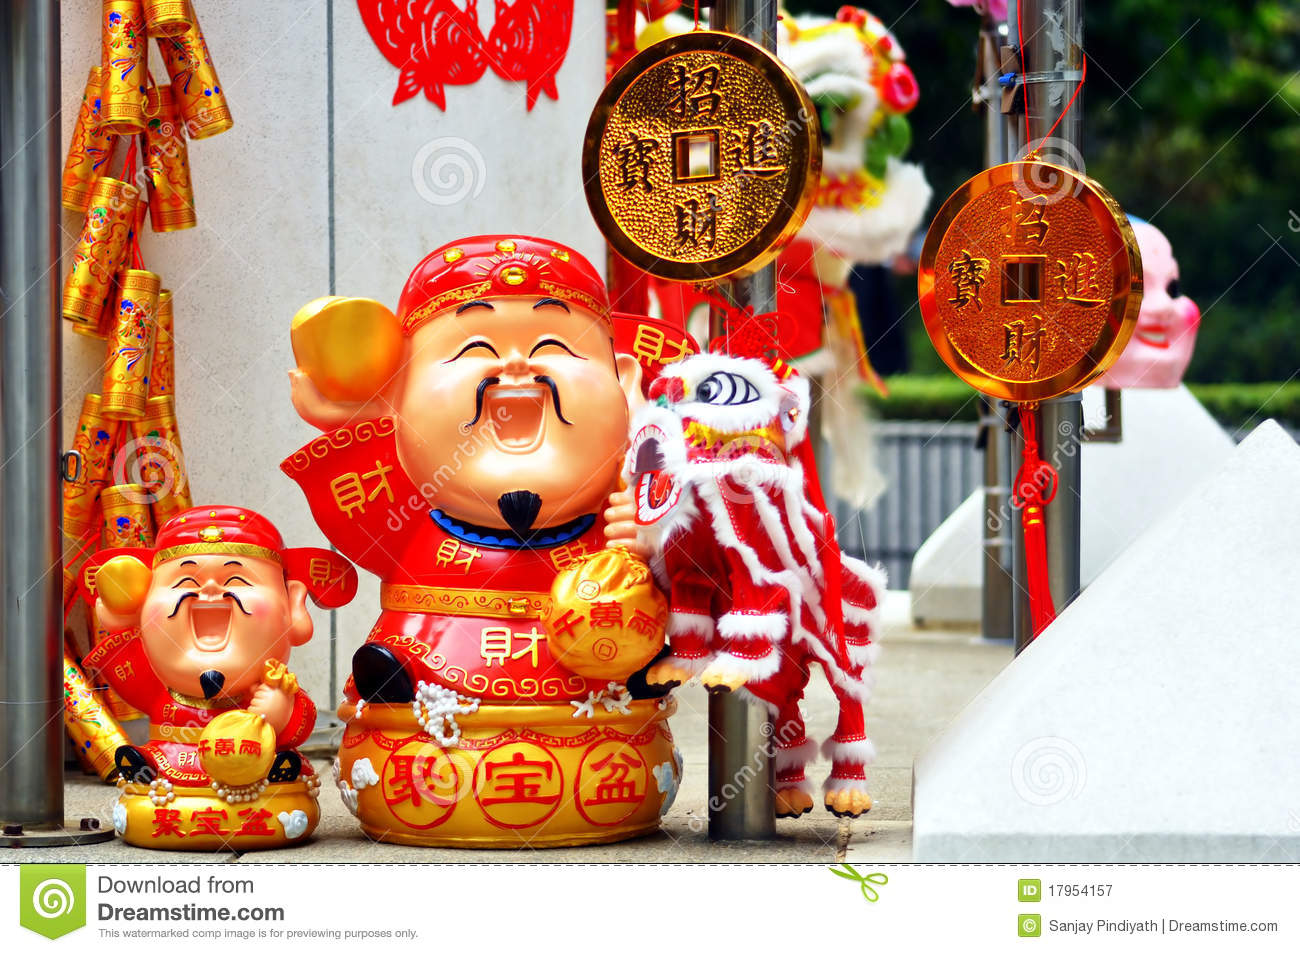 Lunar New Year Decorations Royalty Free Stock Photography